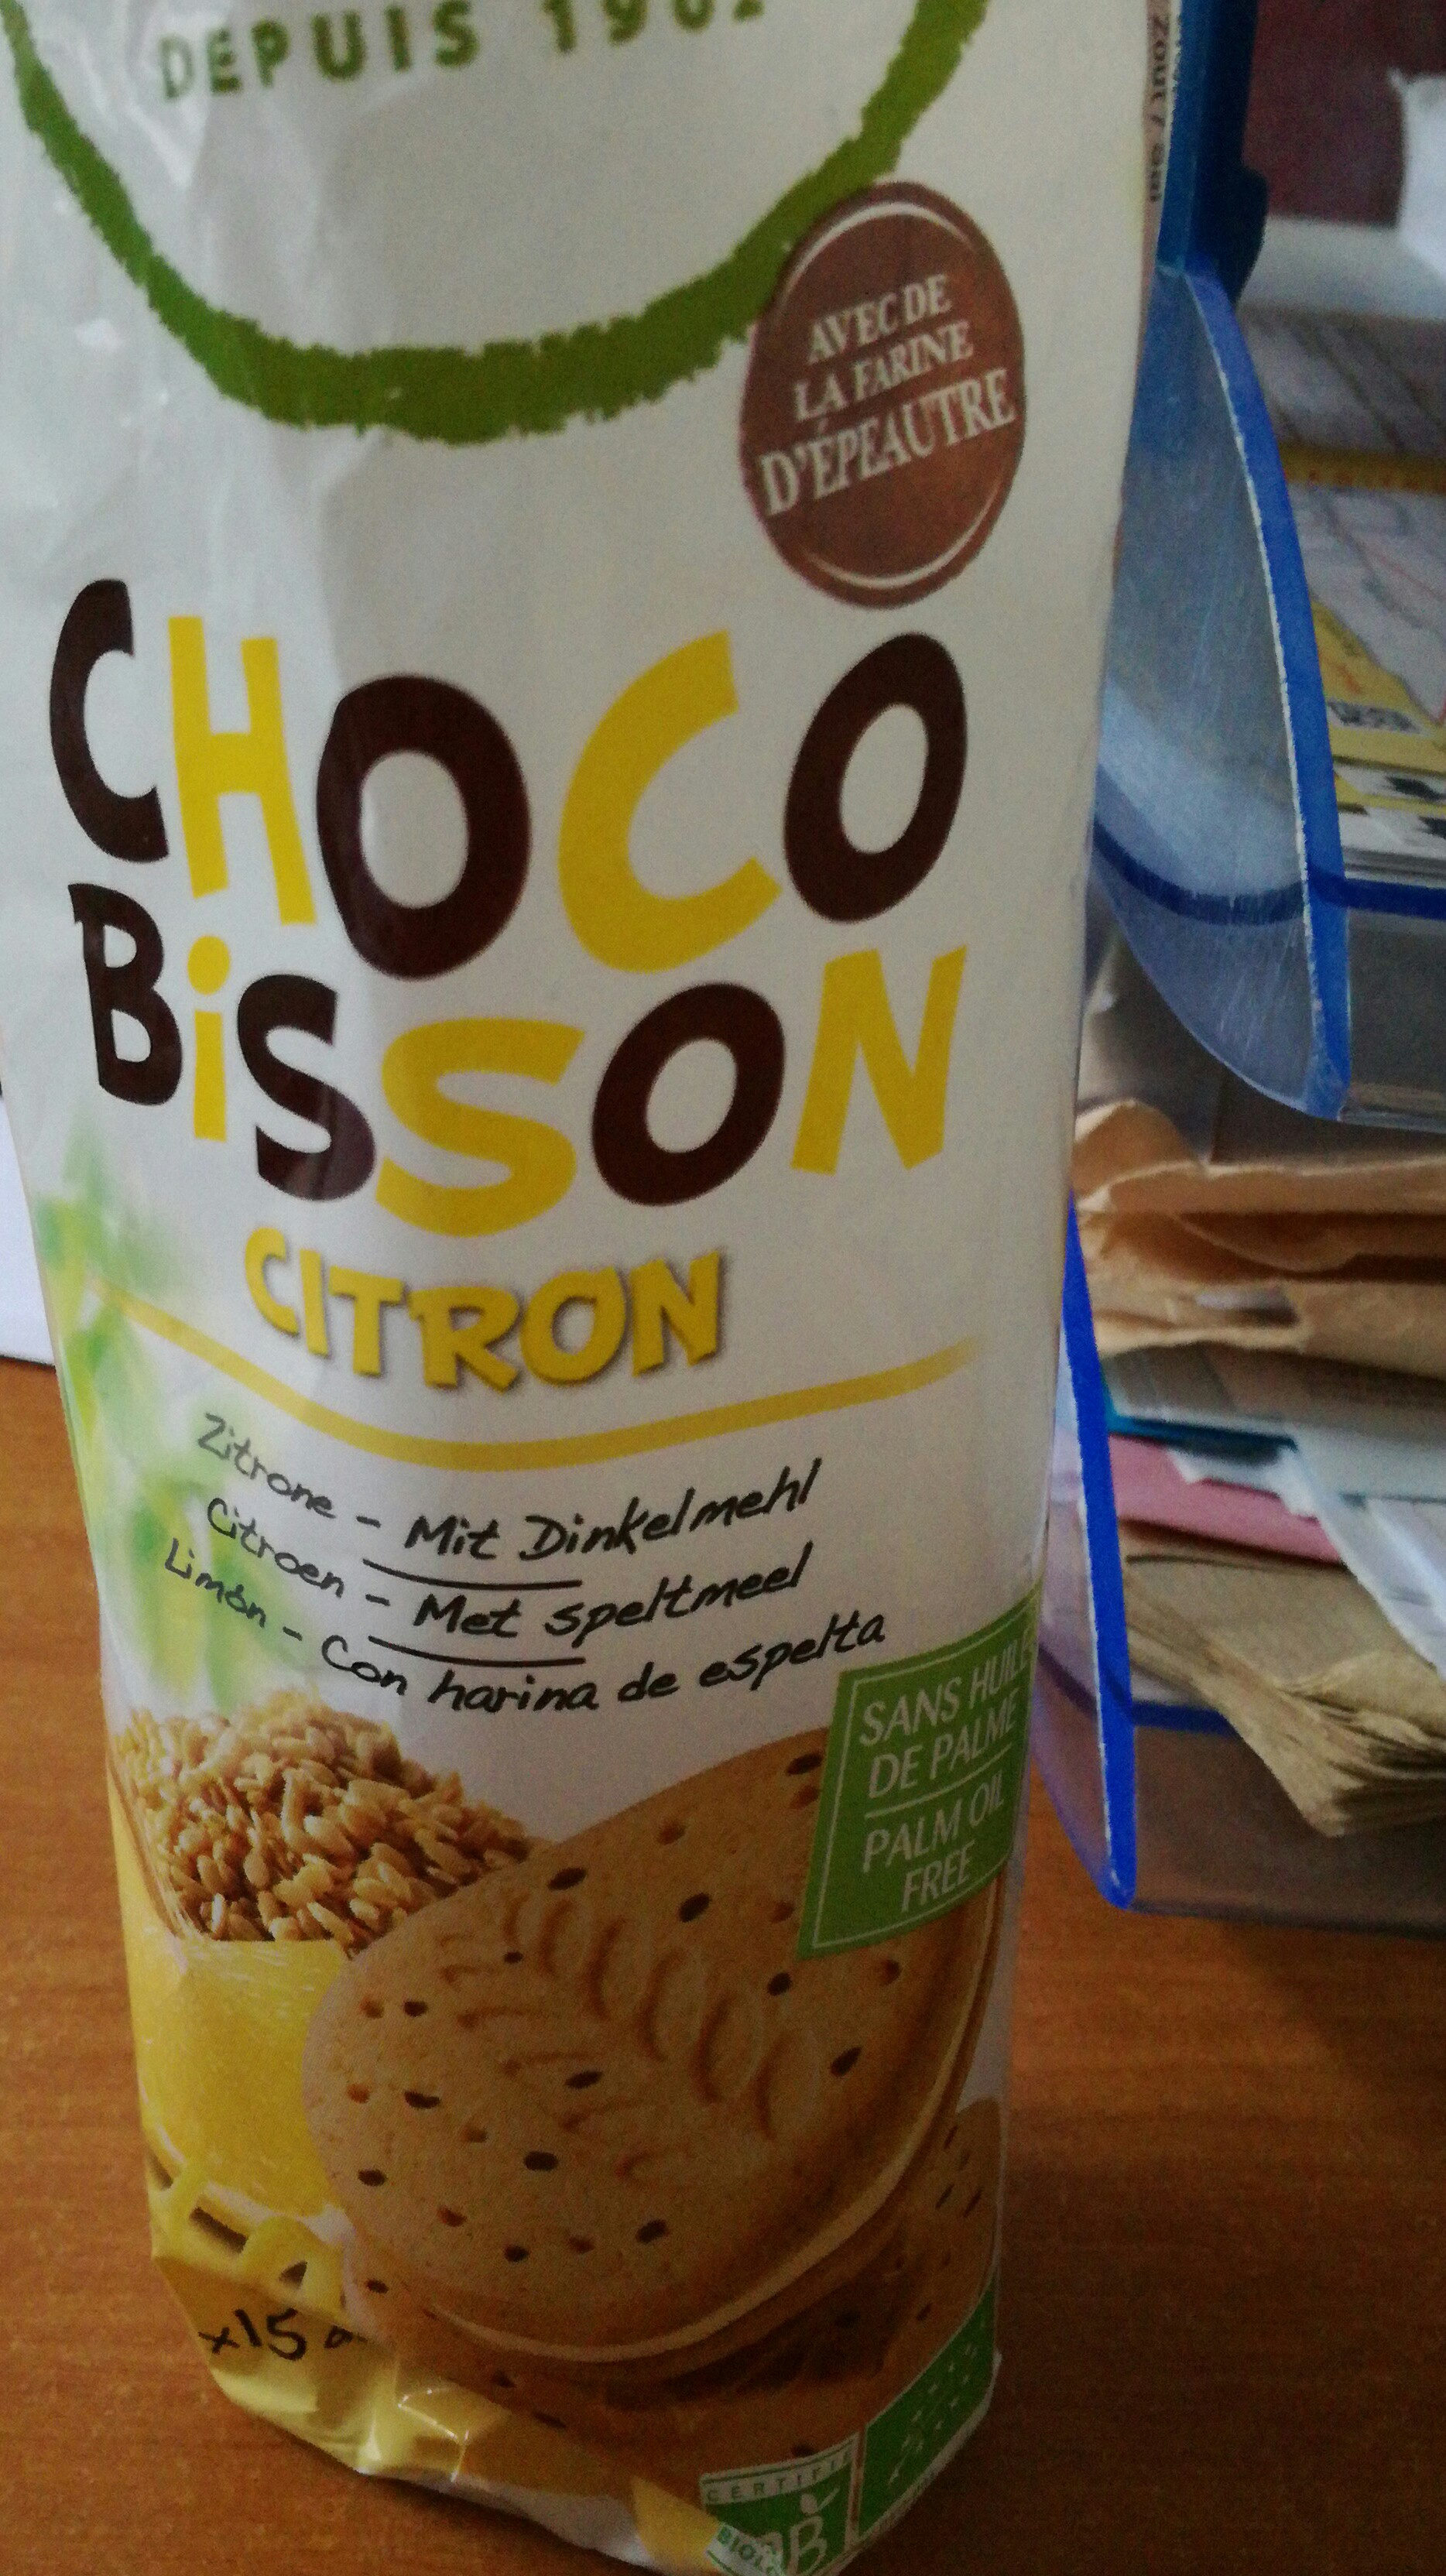 Choco Bisson Citron - Product